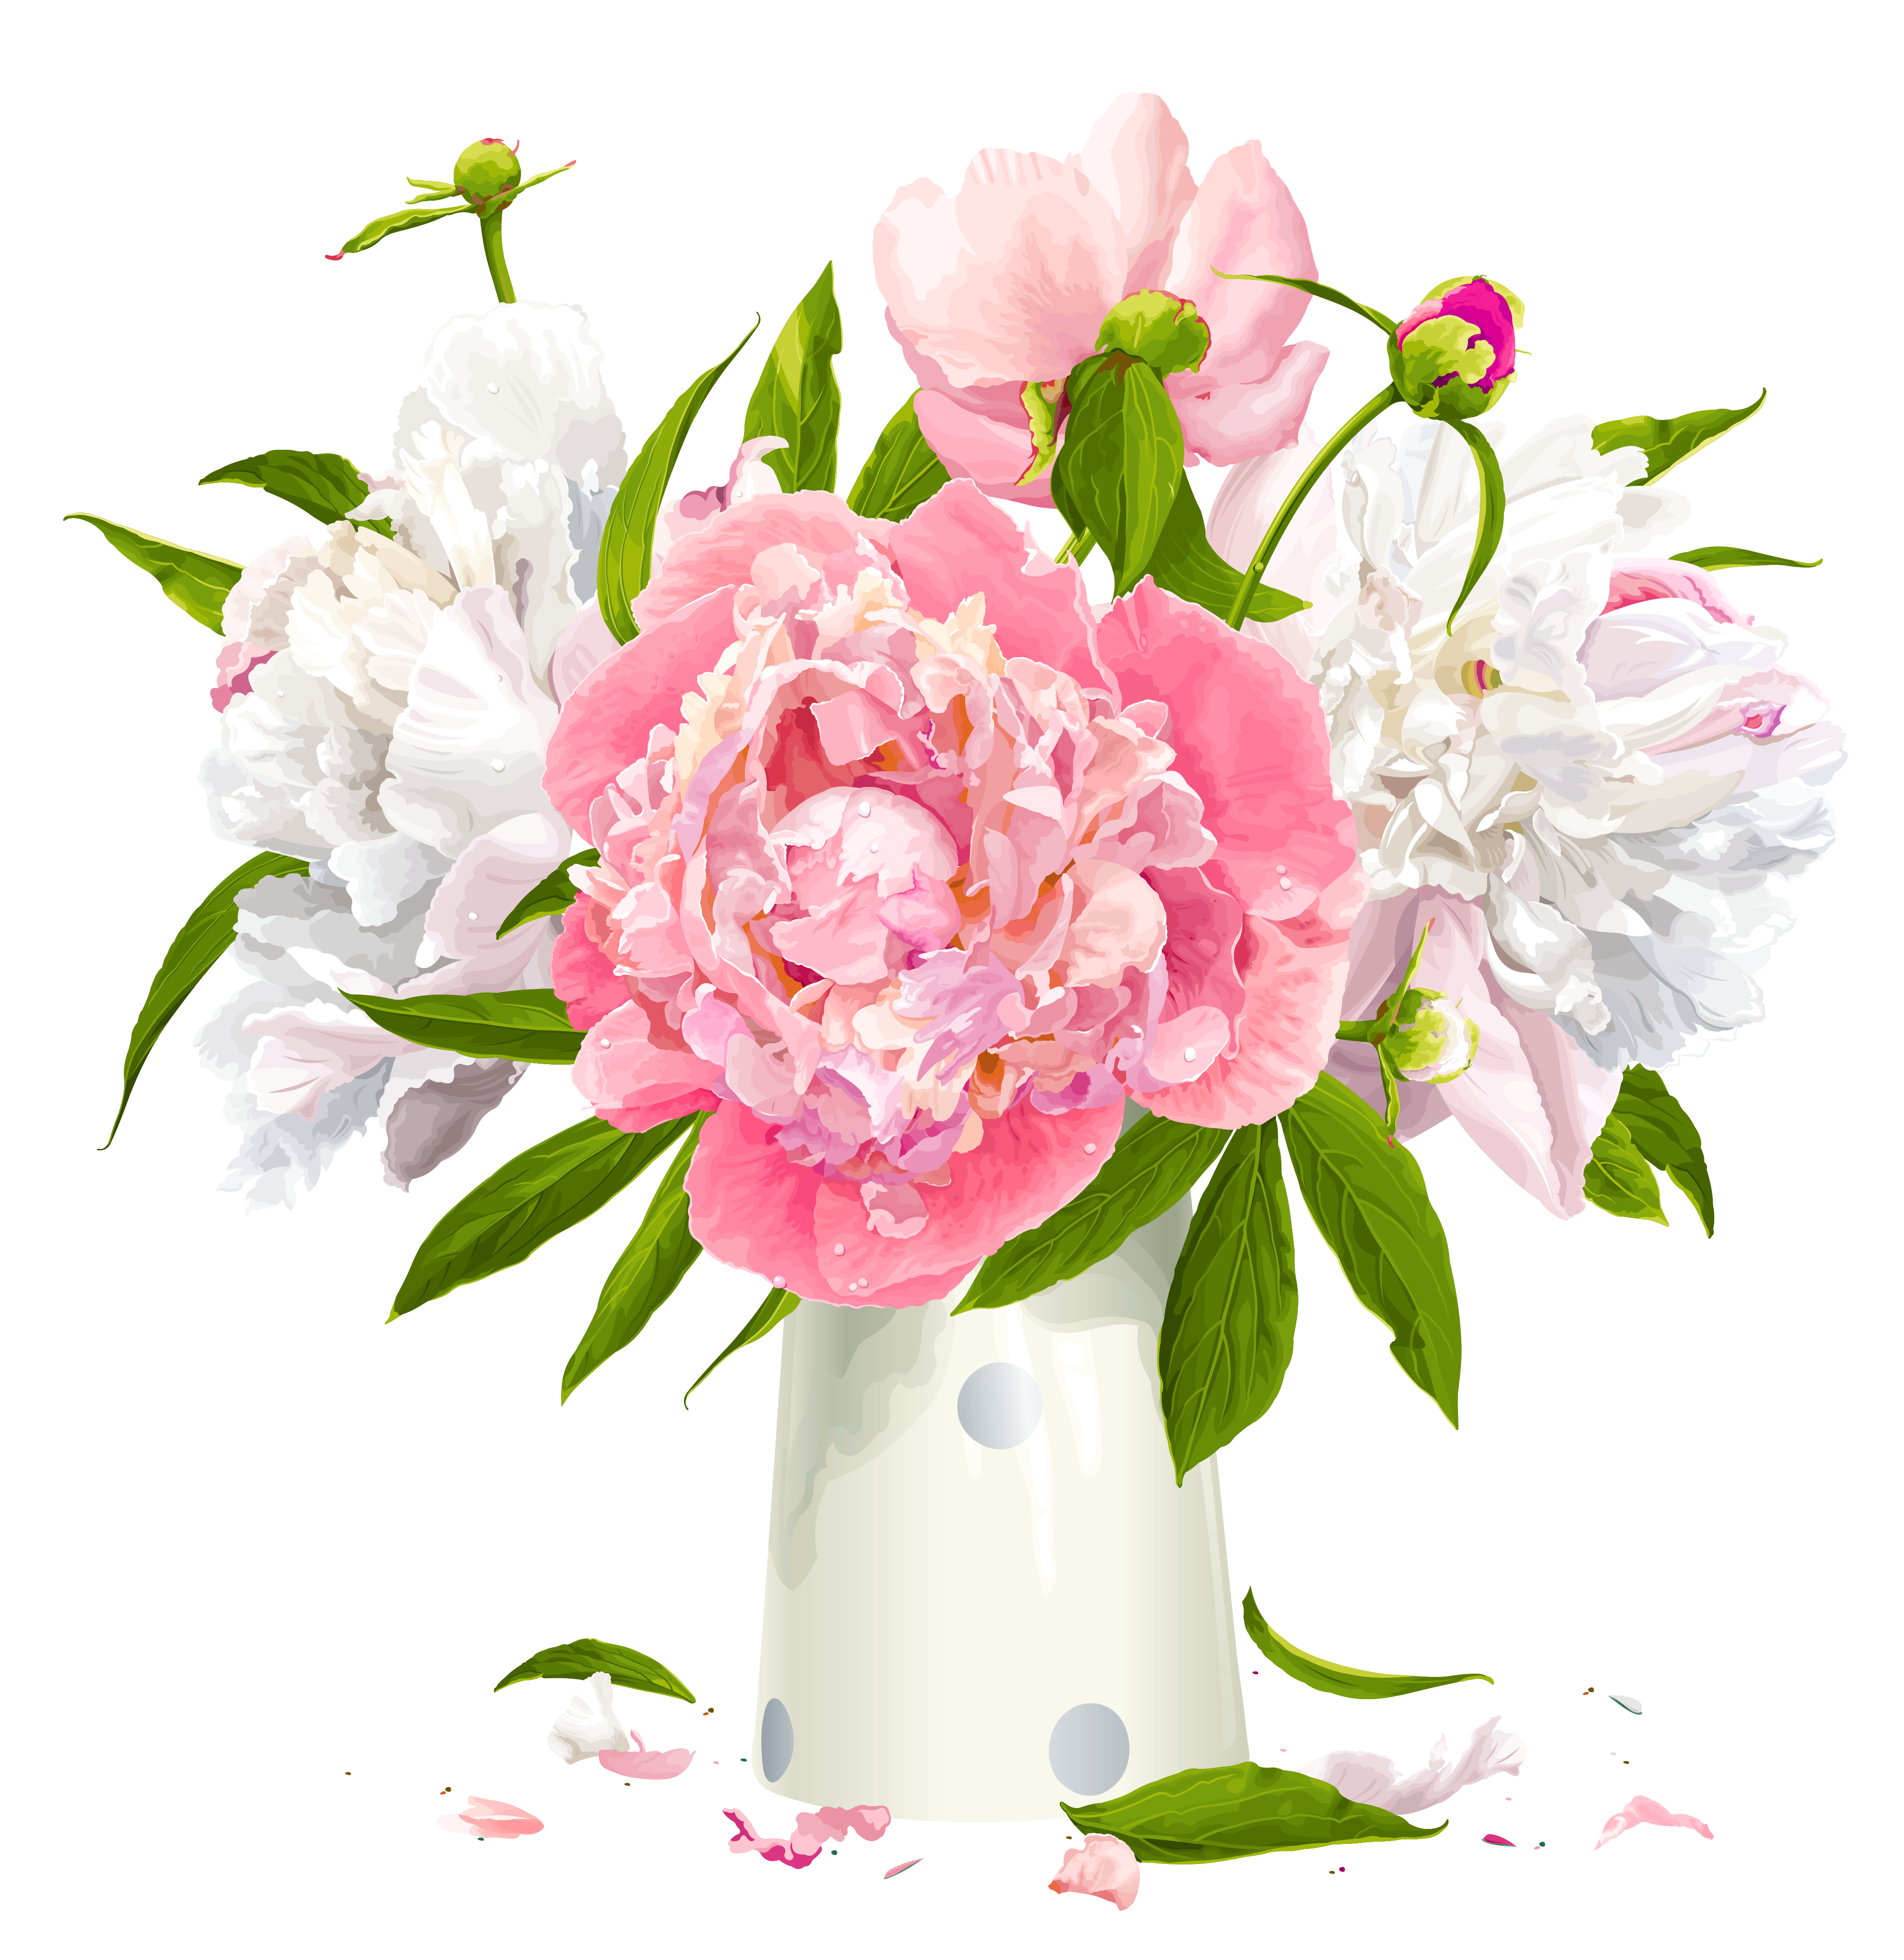 peony cliparts printable images pinterest peony flower rh pinterest com pink peony clipart pink peony clipart